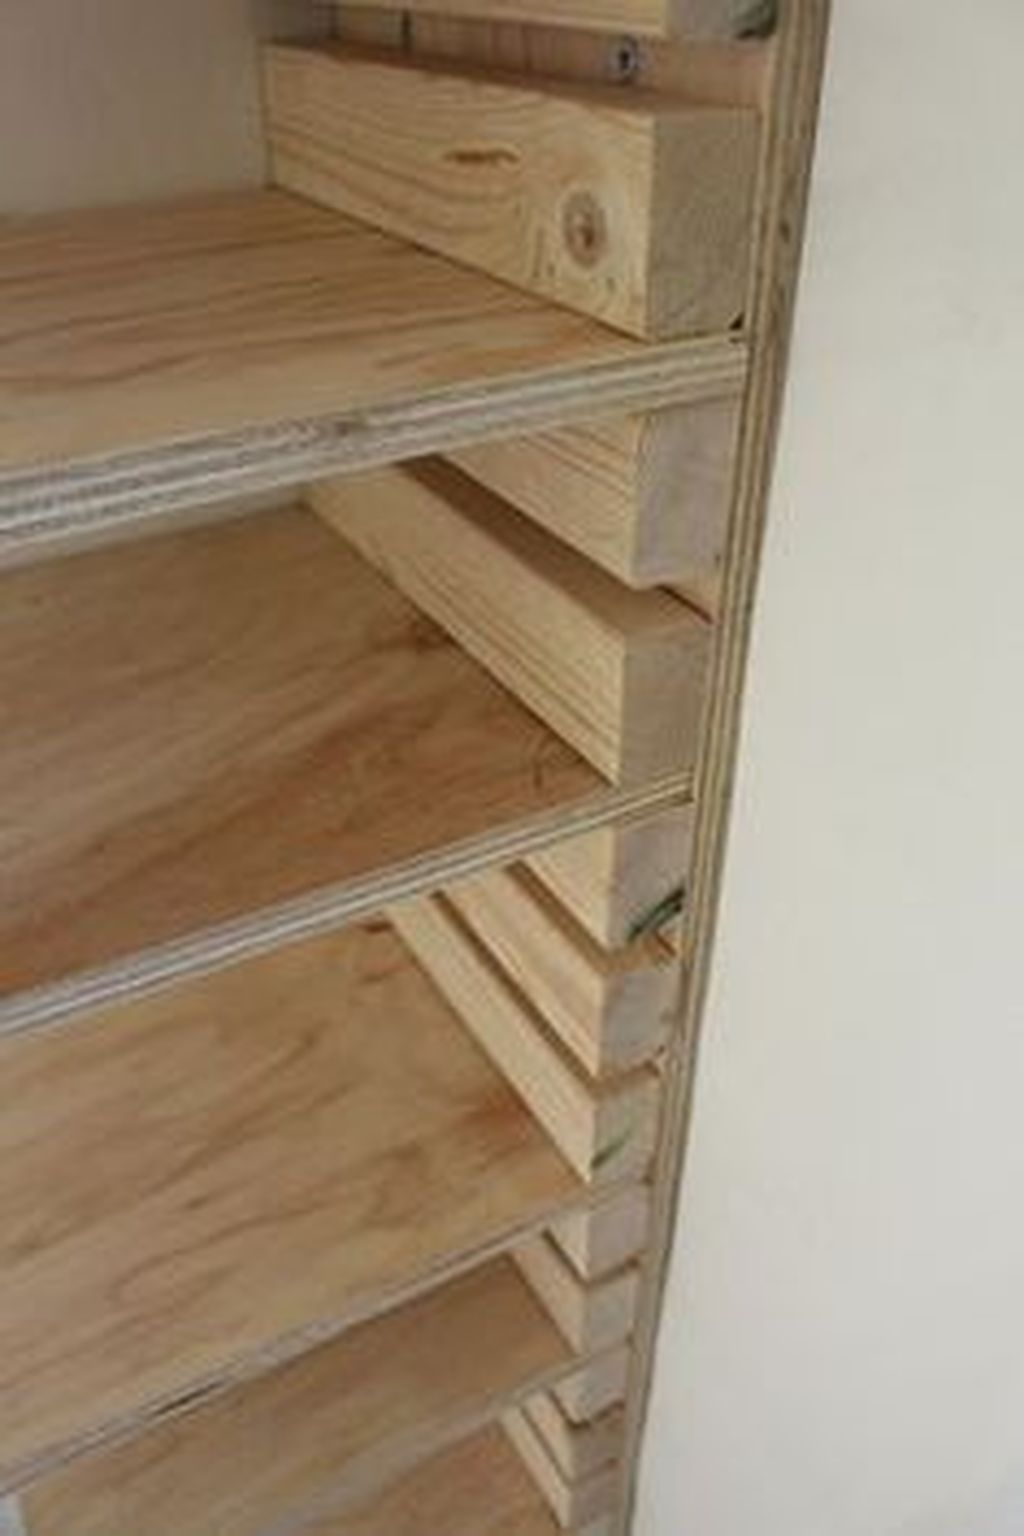 48 Easy Shoe Rack Design Ideas Diy Wood Shelves Wooden Shoe Racks Diy Shoe Rack